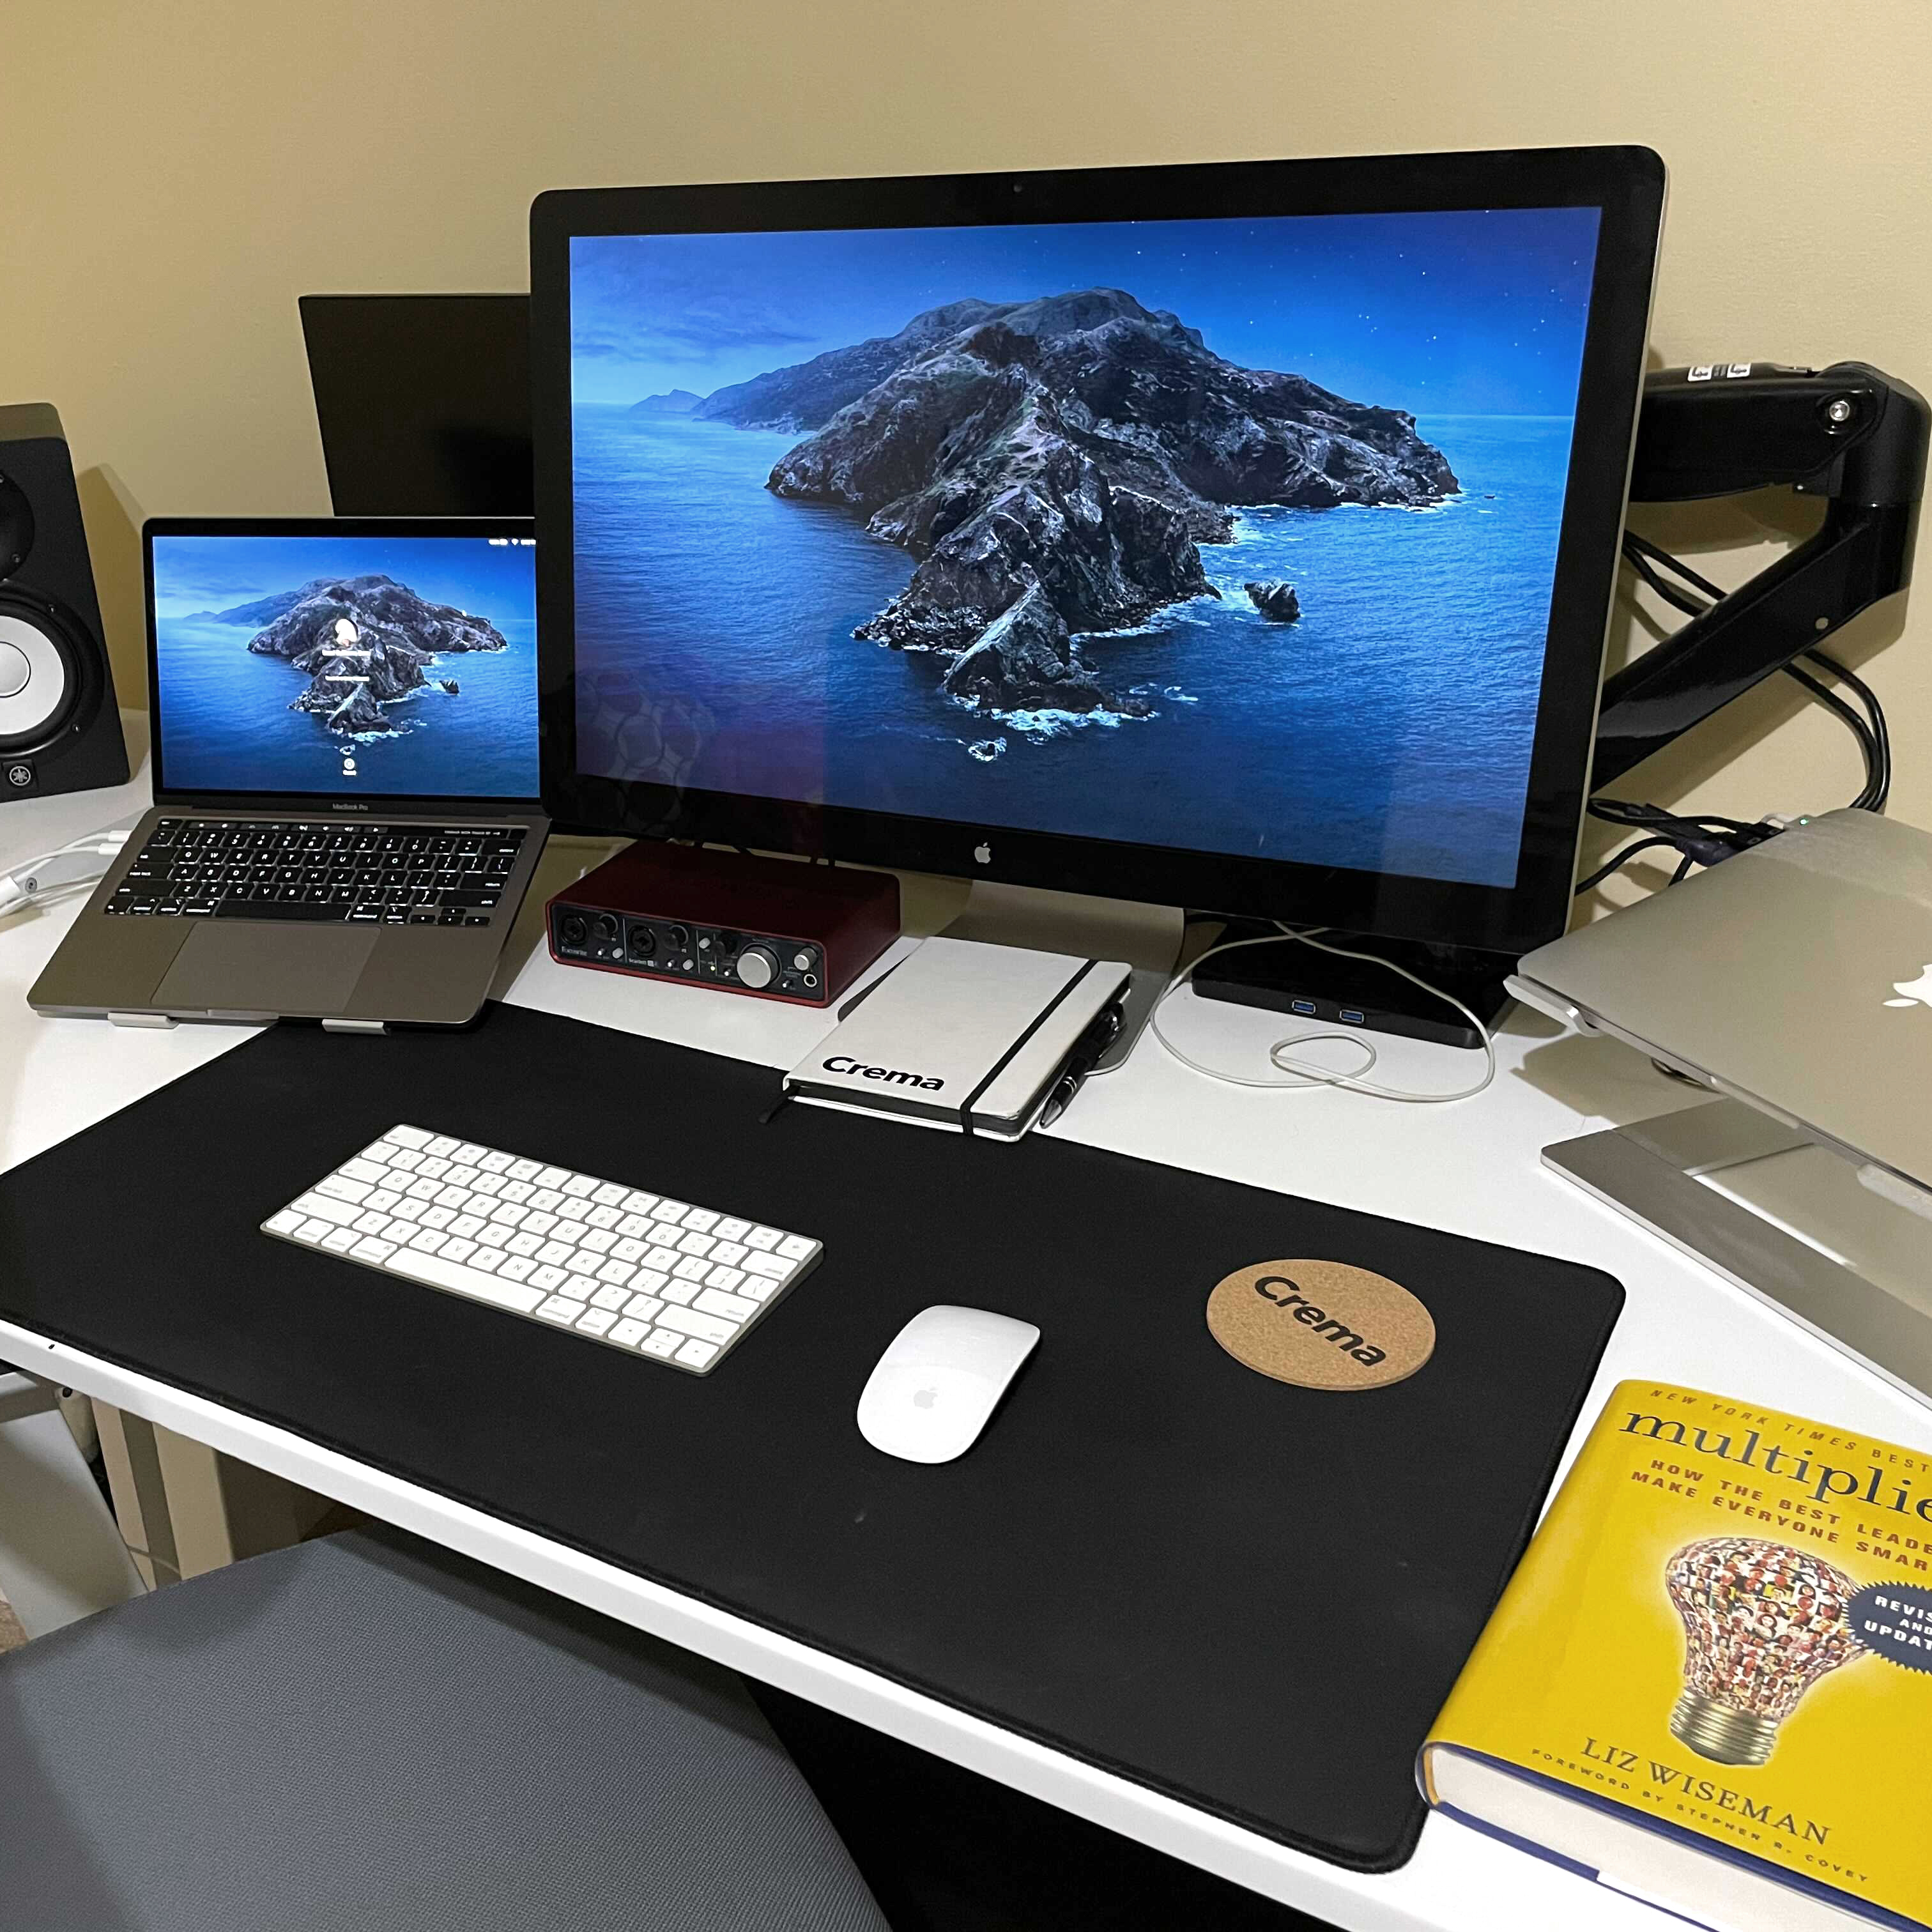 Israel's desk set up for working from home